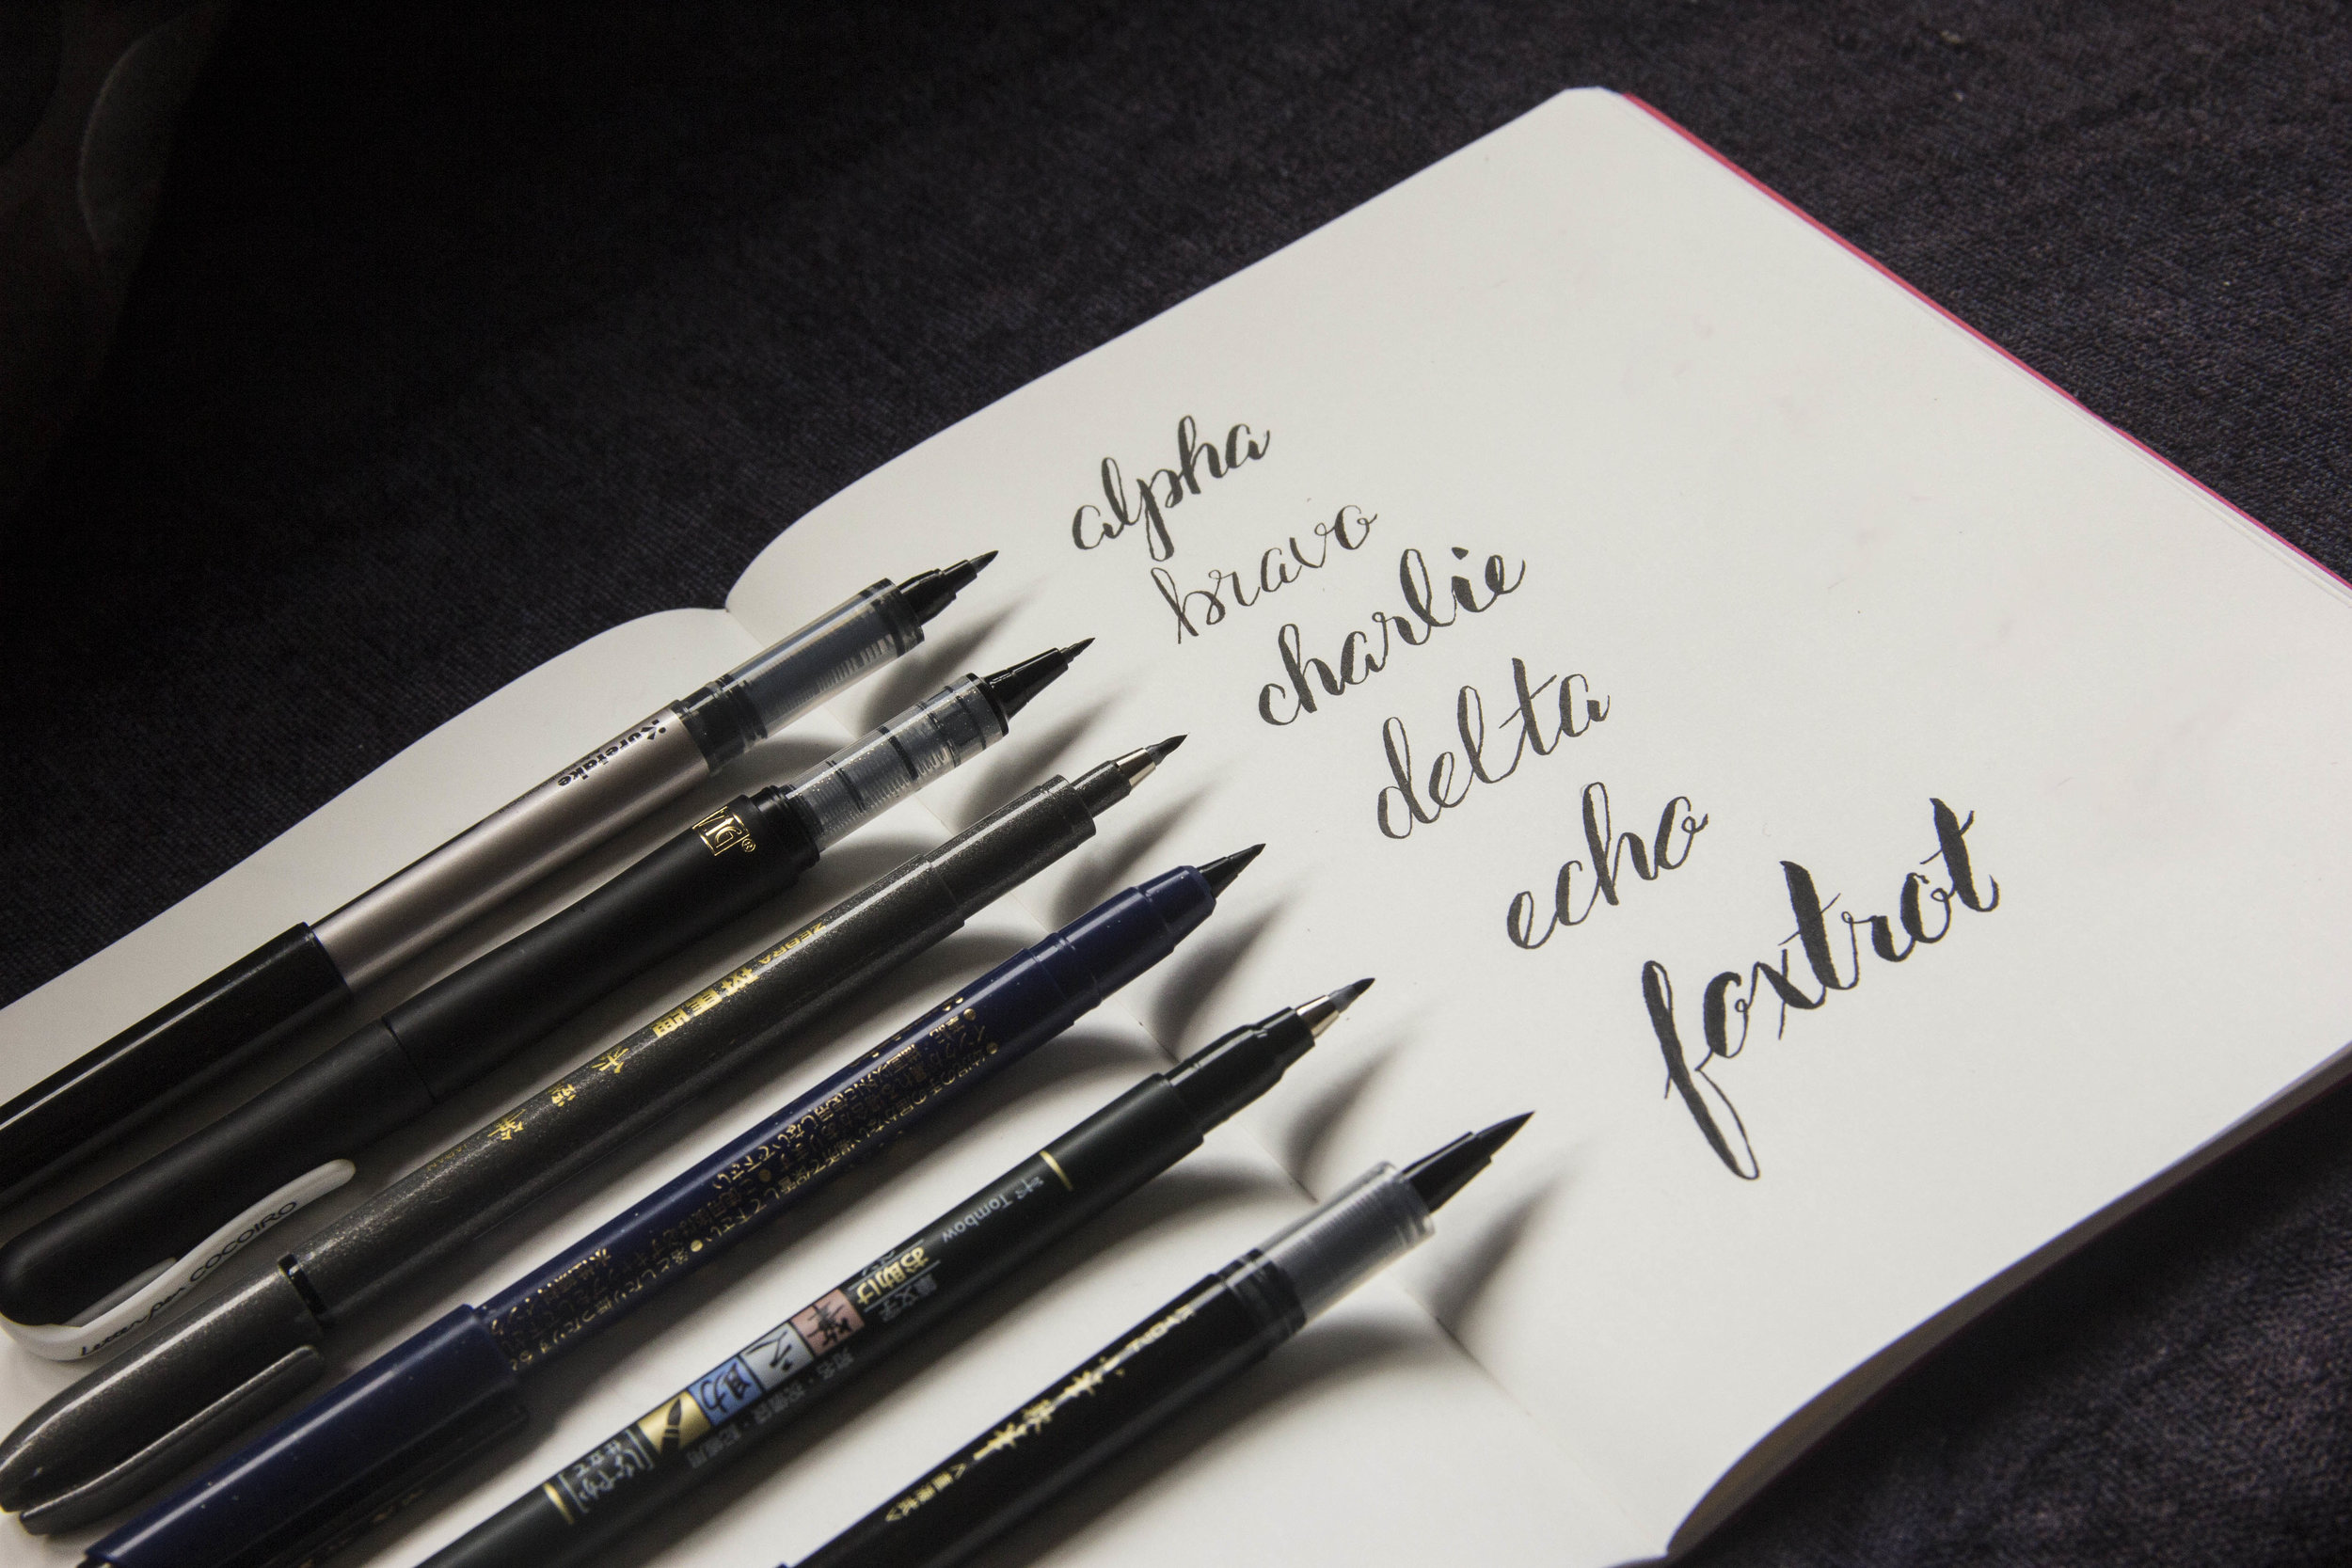 brush pen examples for hand lettering. Exploring the differences between pens